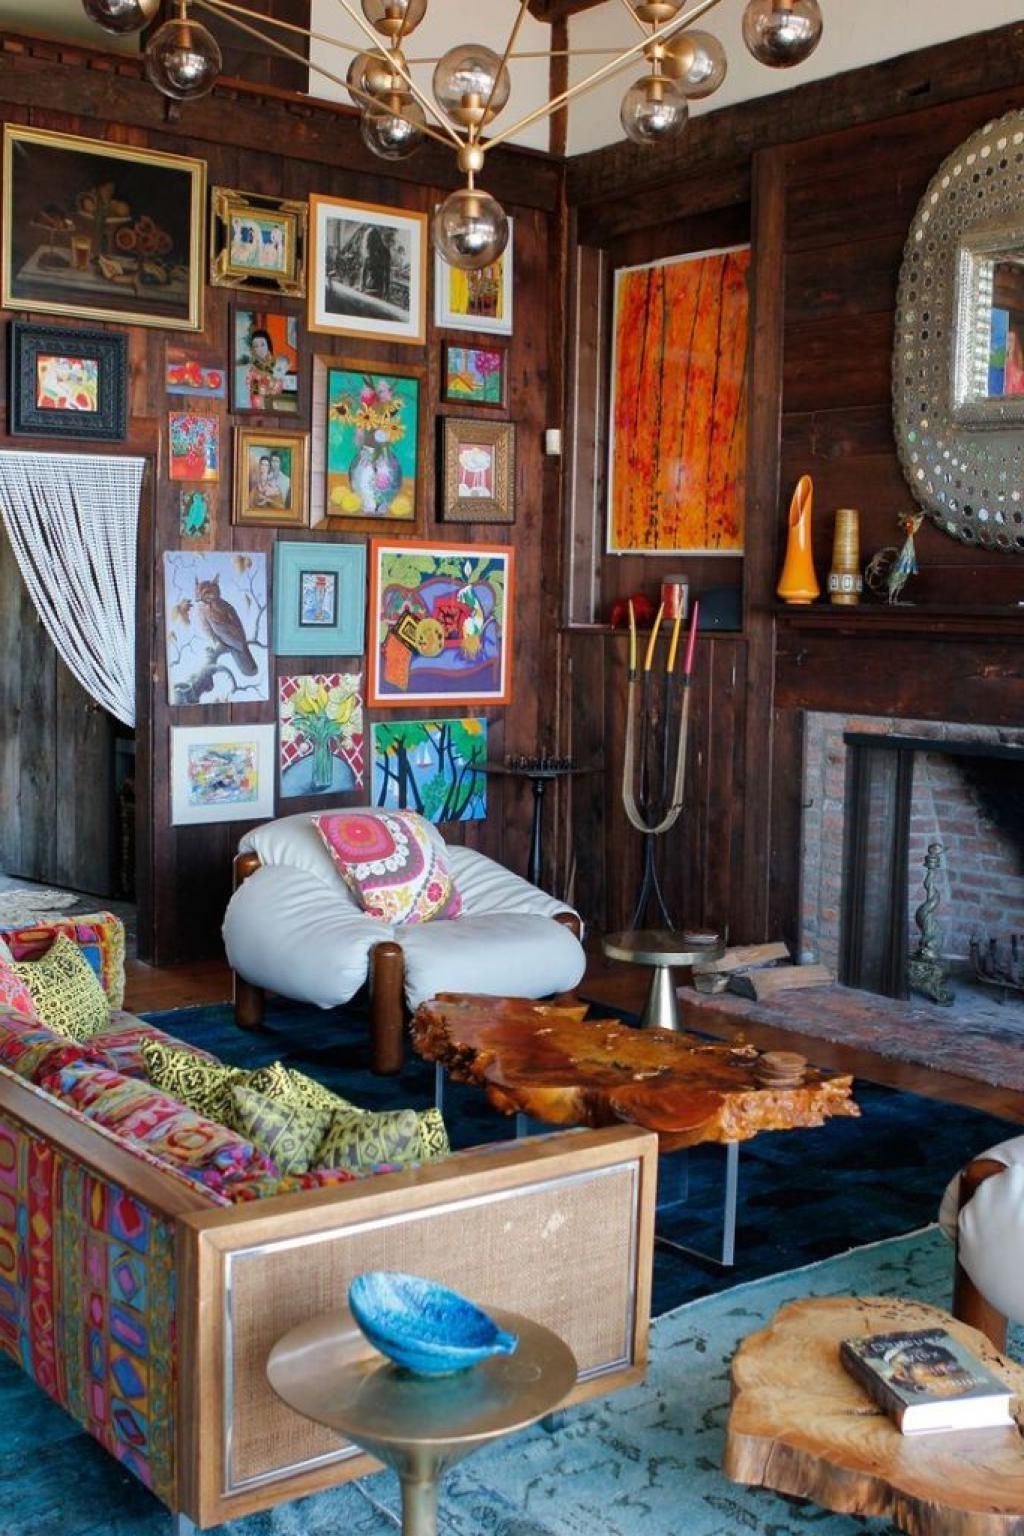 Rustic Eclectic Room So Colorful And Cute With Frame Painting For Decoration  Eclectic living room dcor